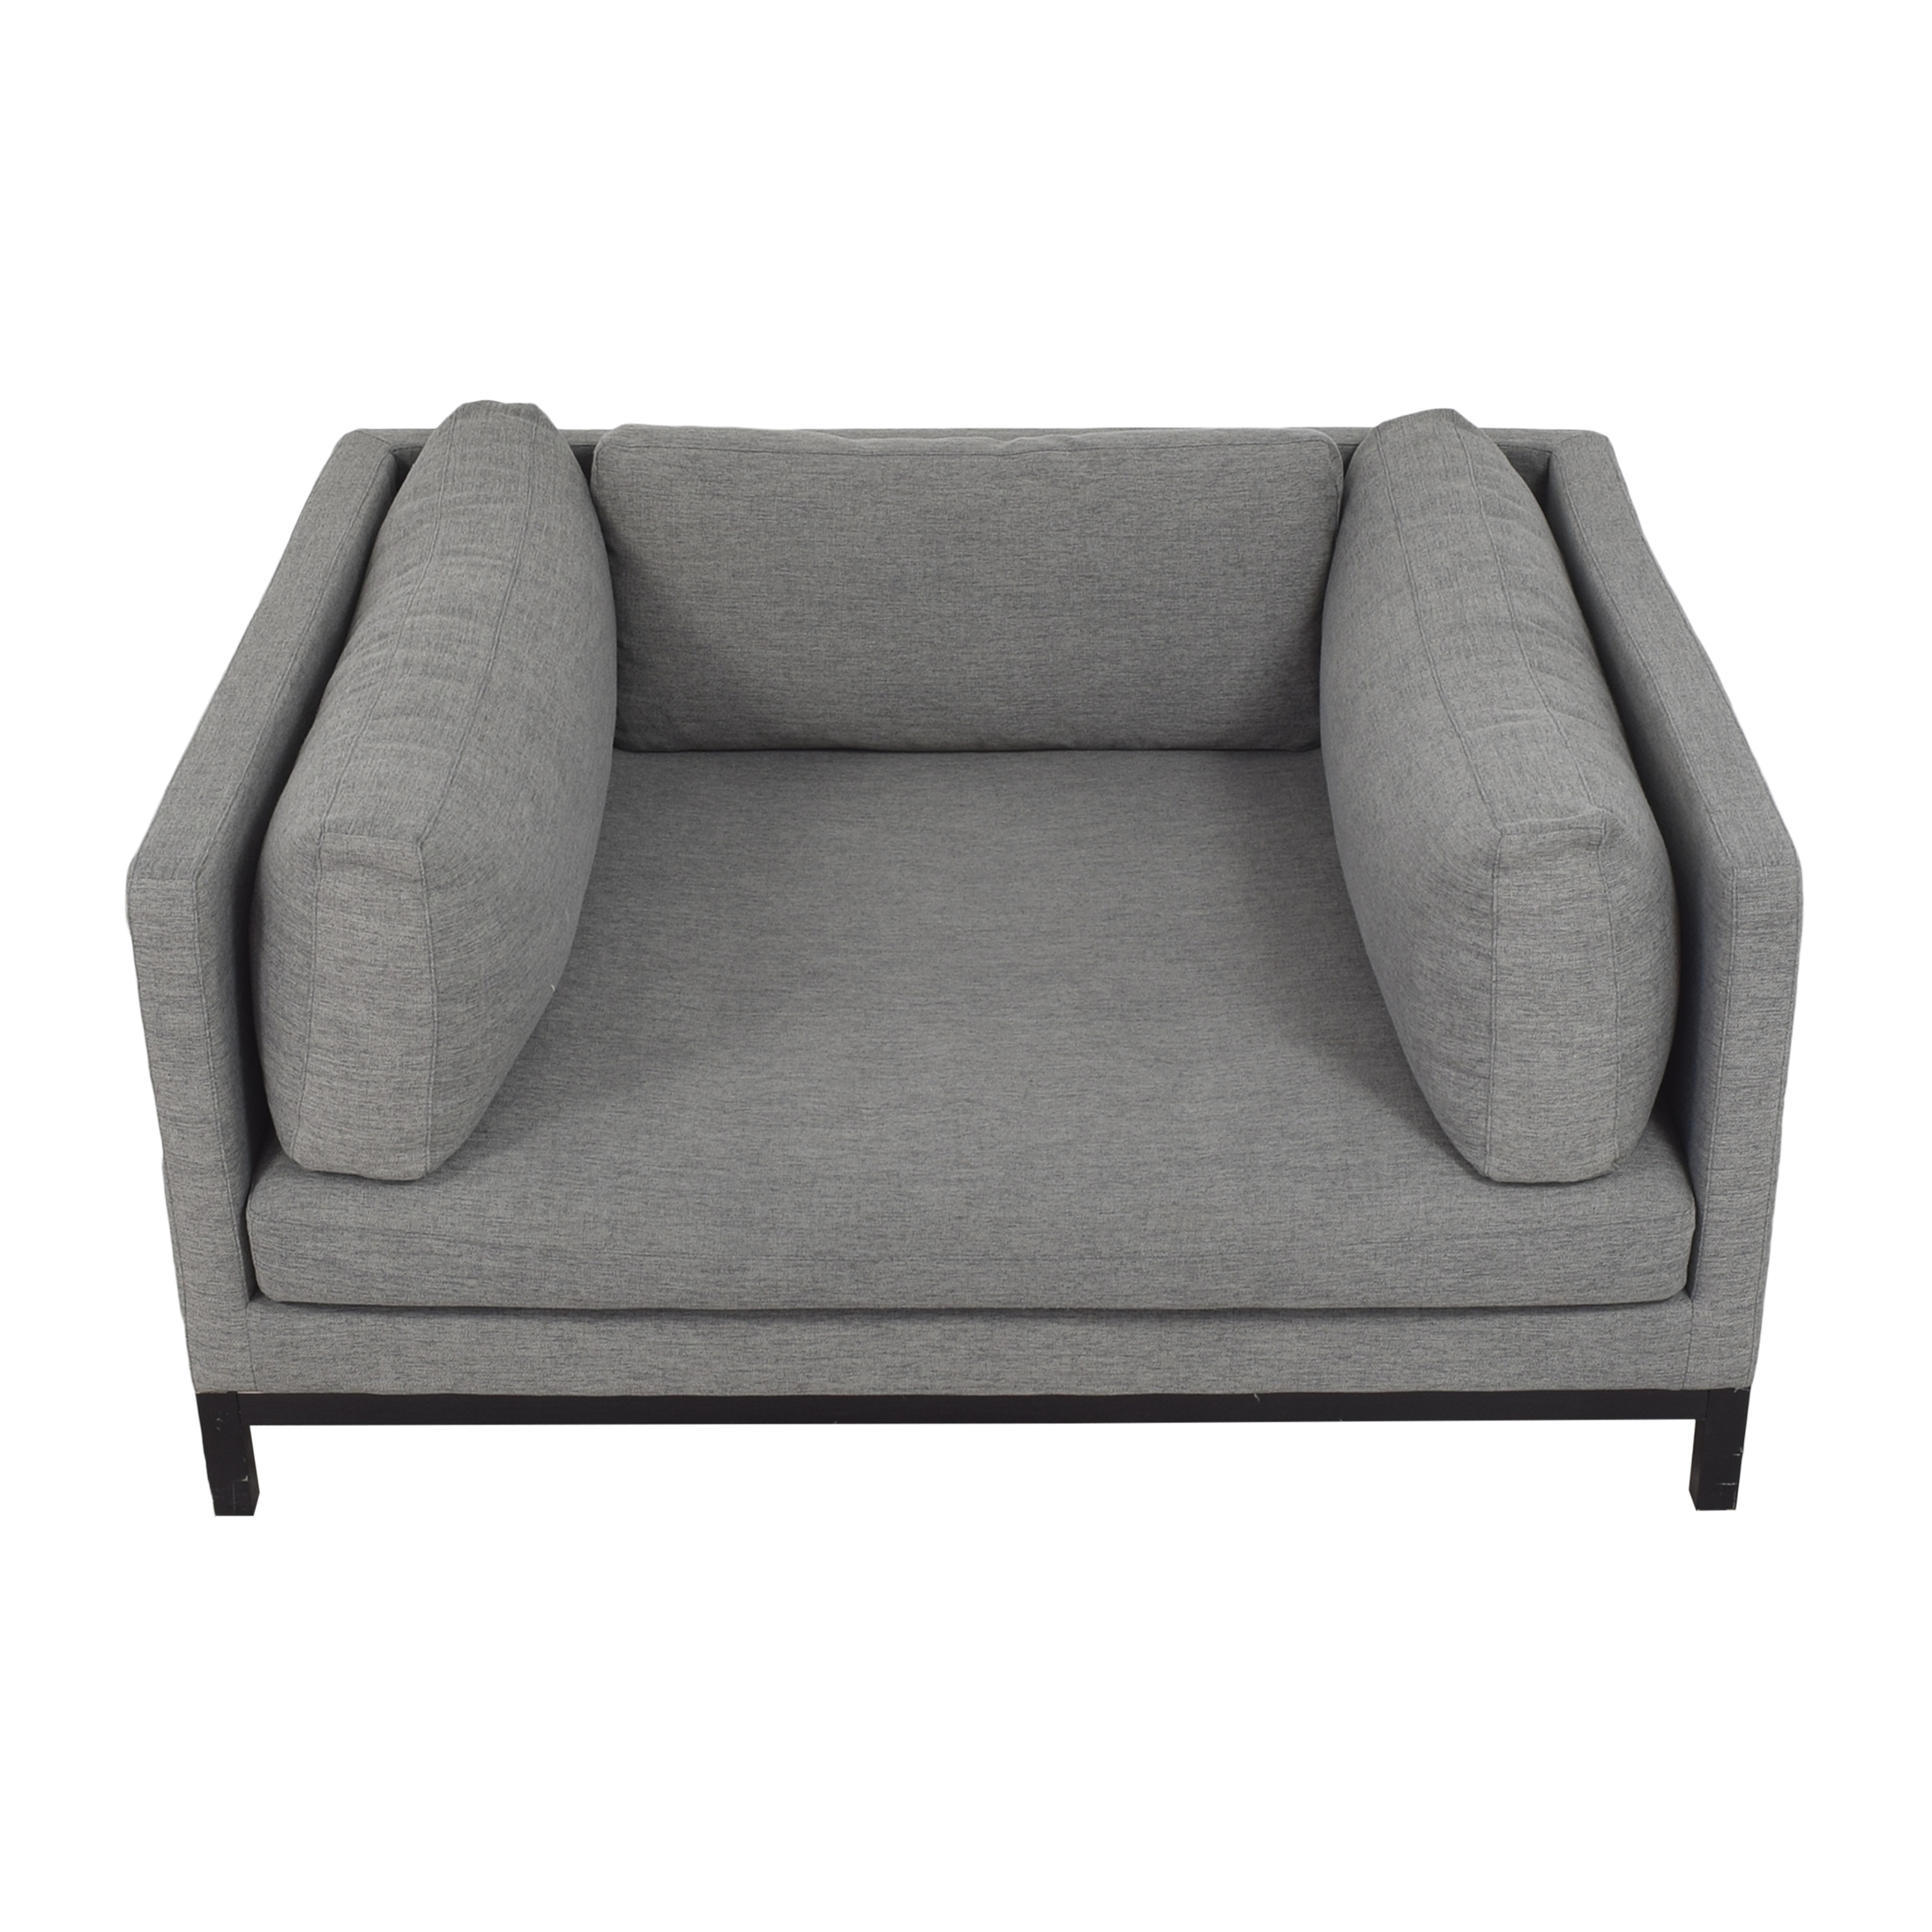 Interior Define Jasper Single-Cushion Sofa nyc